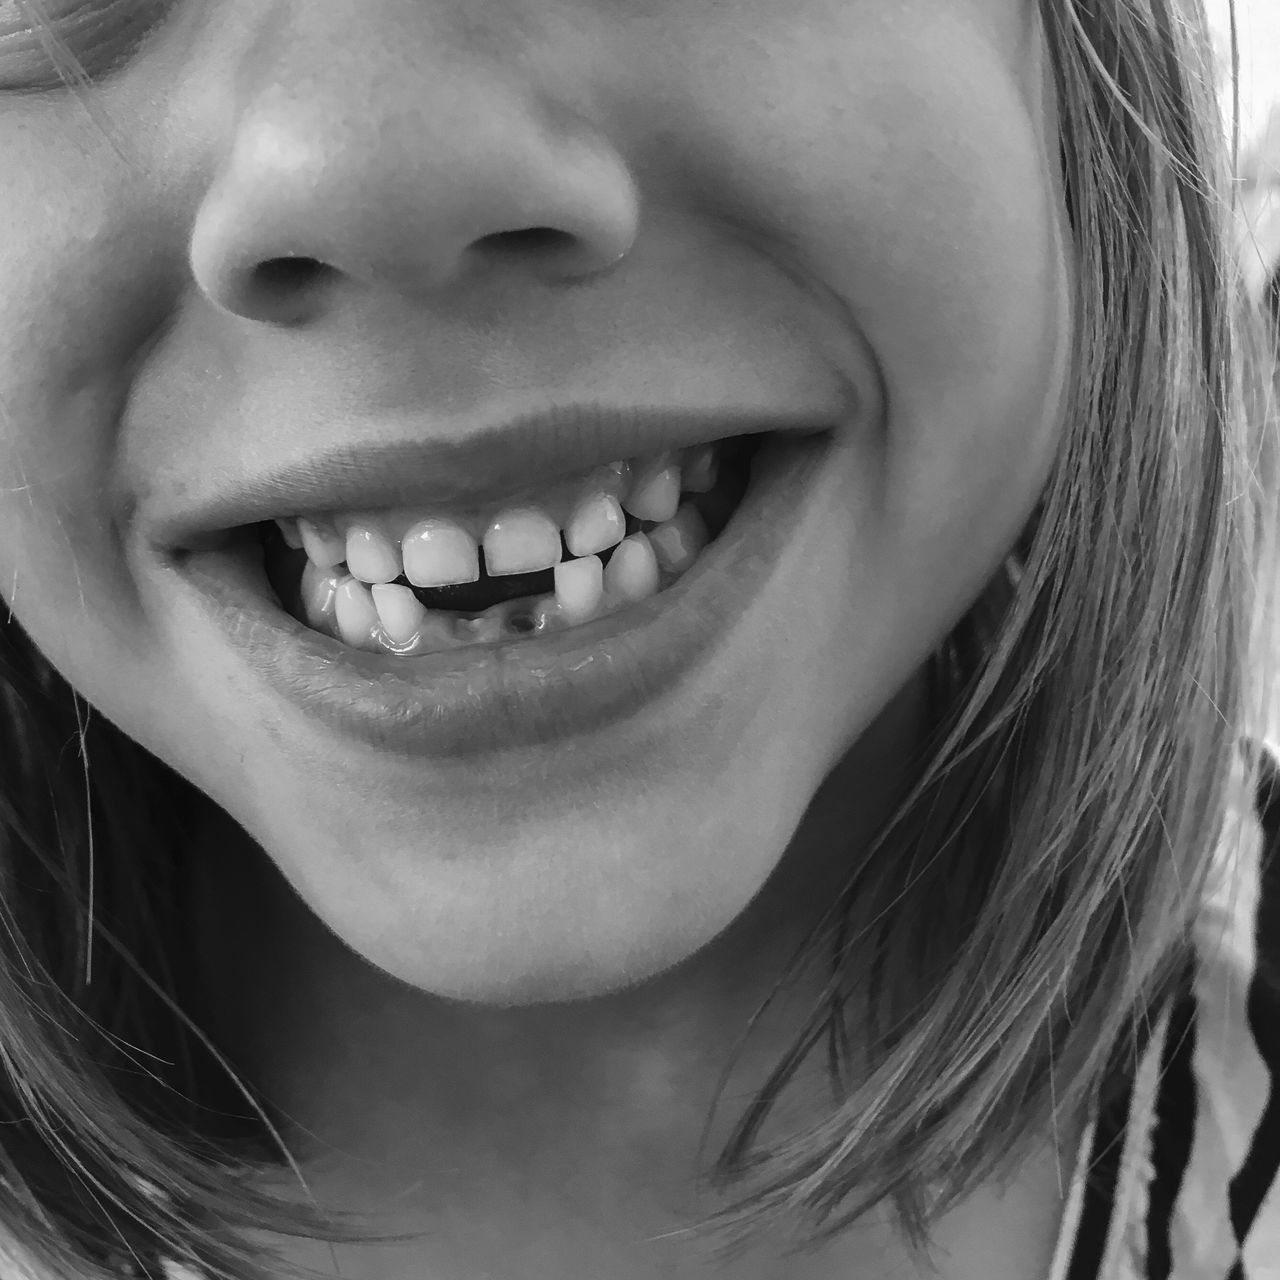 Adult Cheerful Child Childhood Close-up Dental Health Fun Gap Toothed Happiness Healthcare And Medicine Human Body Part Human Face Human Lips Human Mouth Human Teeth Indoors  Little Girl Mouth Open One Person People Smiling Teeth Toothy Smile Young Adult Young Women